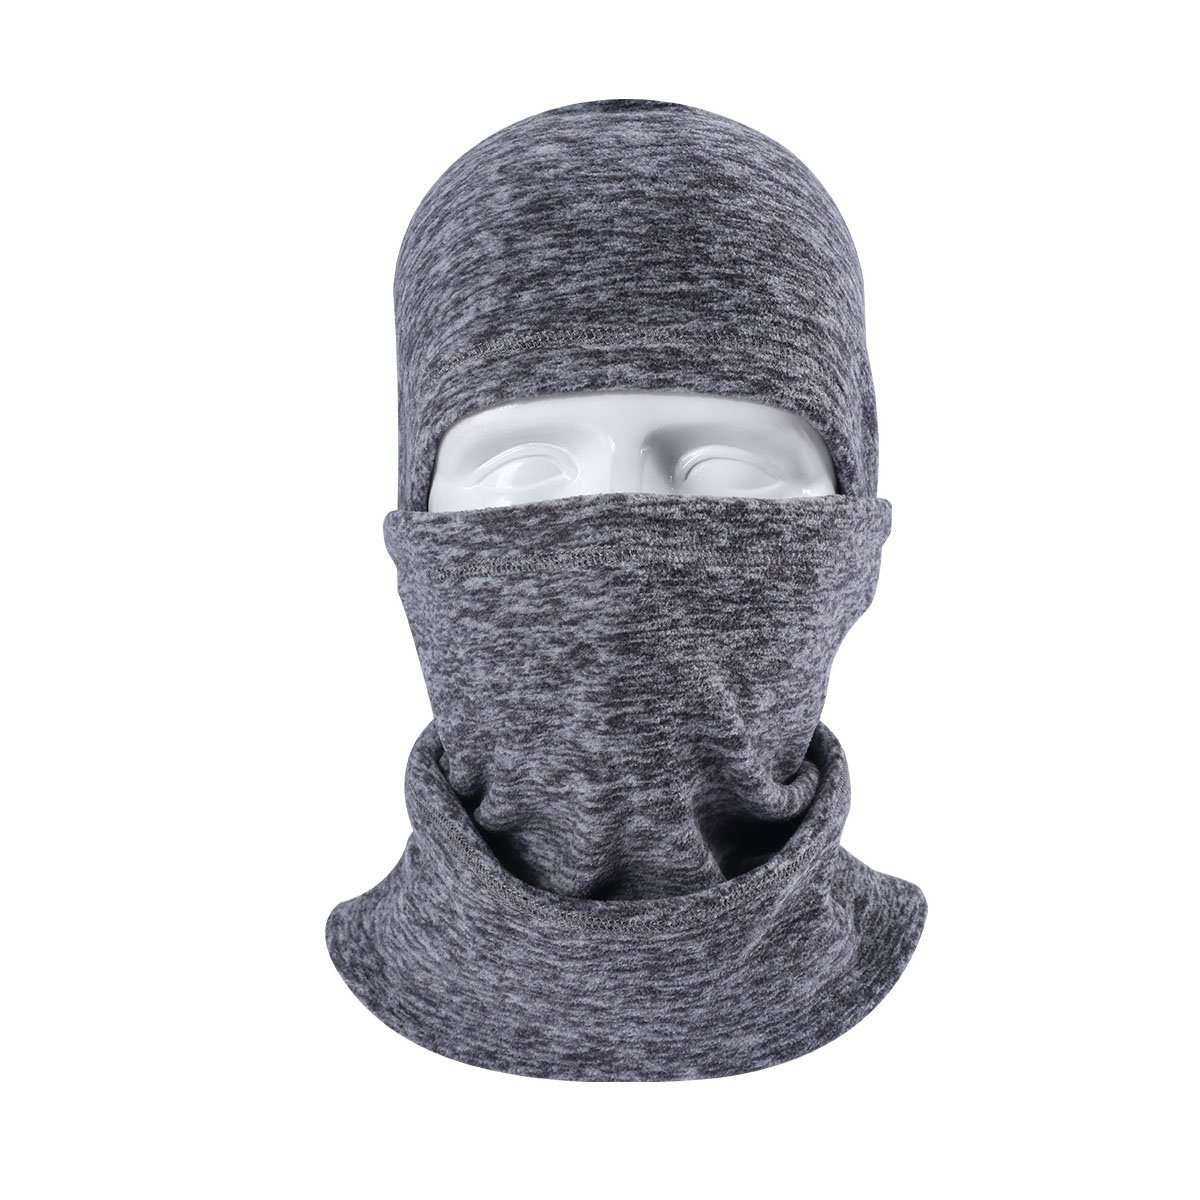 Runtlly Winter Heavyweight Mask Warm Windproof Balaclava Motorcycle Tactical Skiing Face Mask Gray